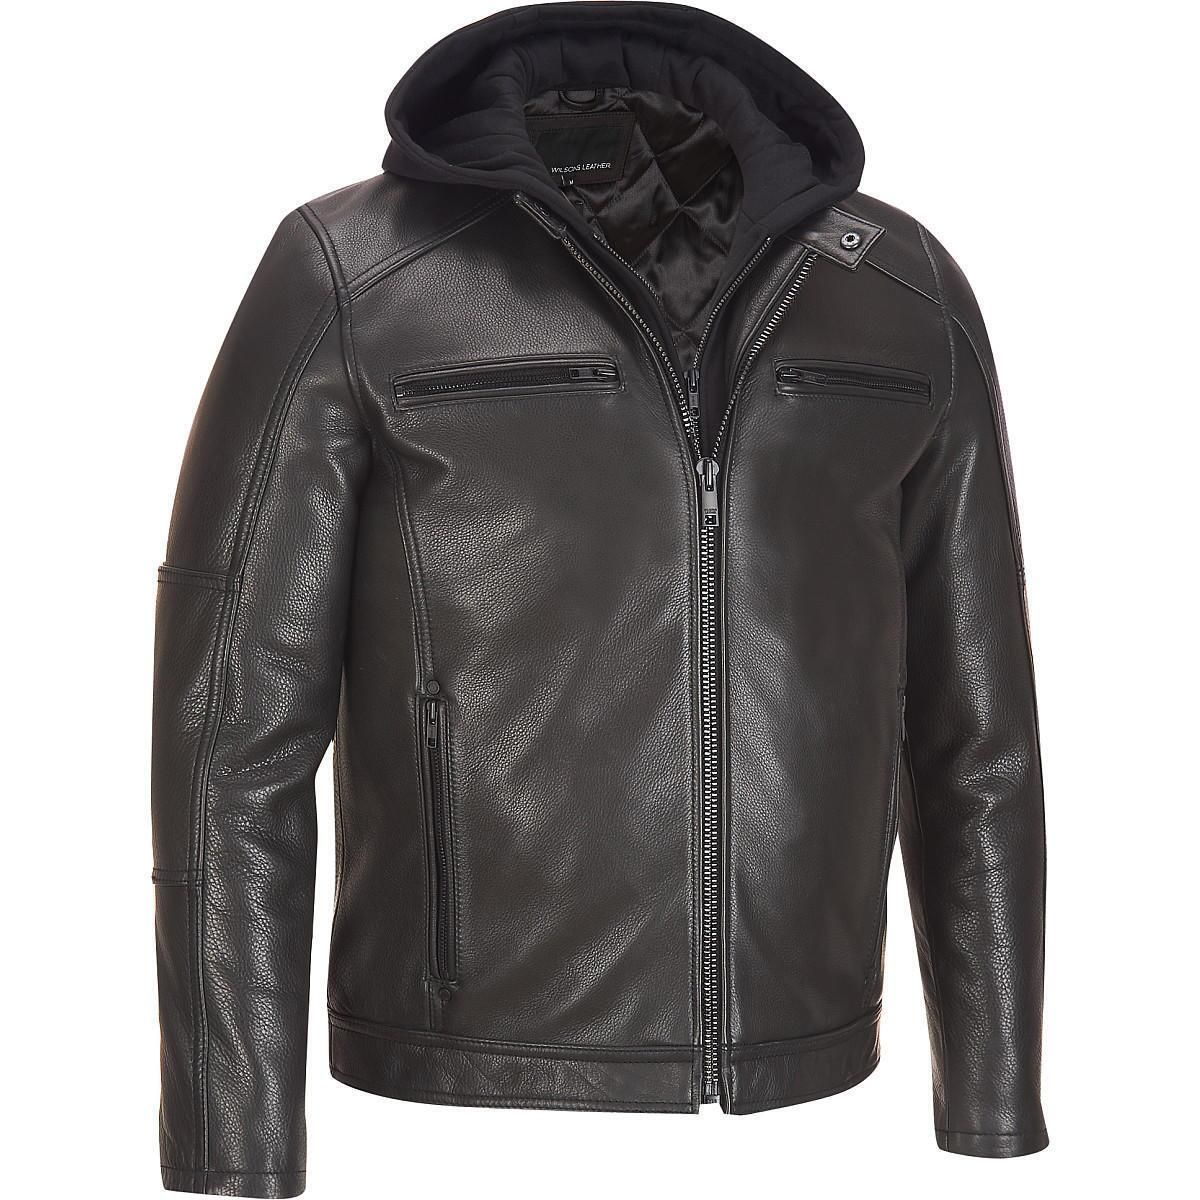 Wilsons Leather Contemporary Leather Jacket w/ Hood 1